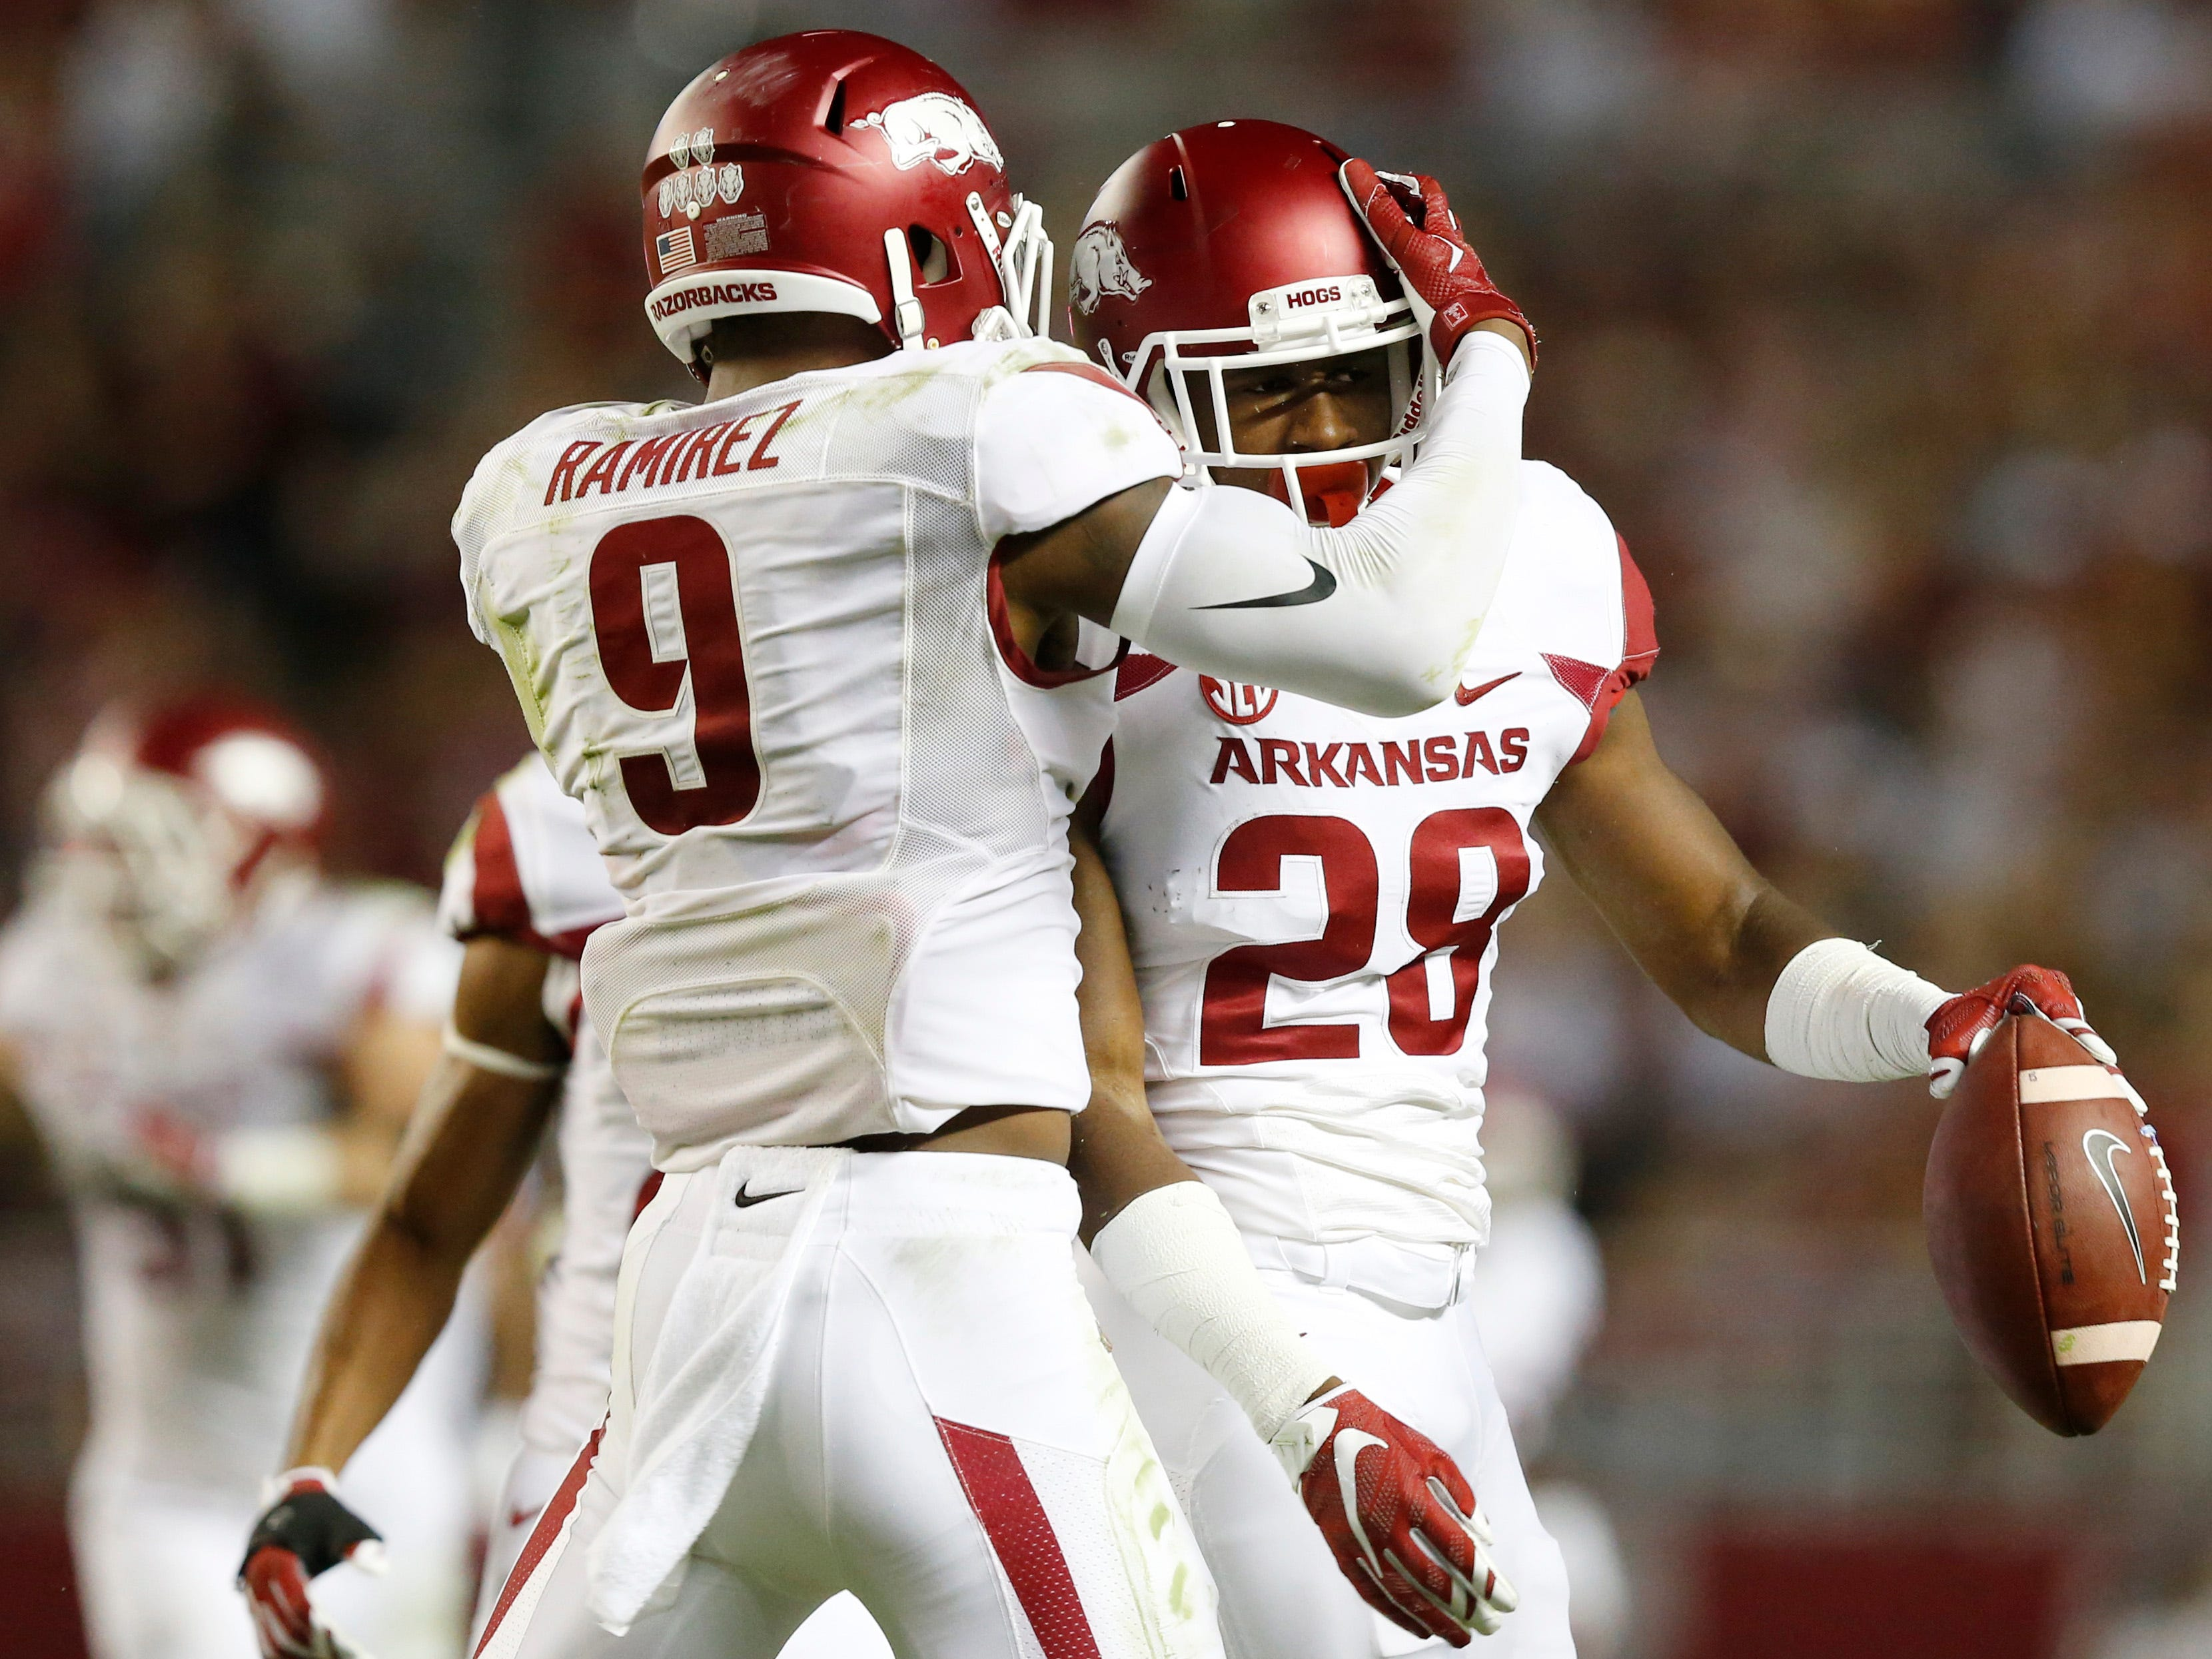 Arkansas defensive back Josh Liddell (28) celebrates with defensive back Santos Ramirez (9) after Liddell intercepts the ball intended for Alabama tight end O.J. Howard (88) in the first half of an NCAA college football game, Saturday, Oct. 10, 2015, in Tuscaloosa, Ala. (AP Photo/Brynn Anderson)